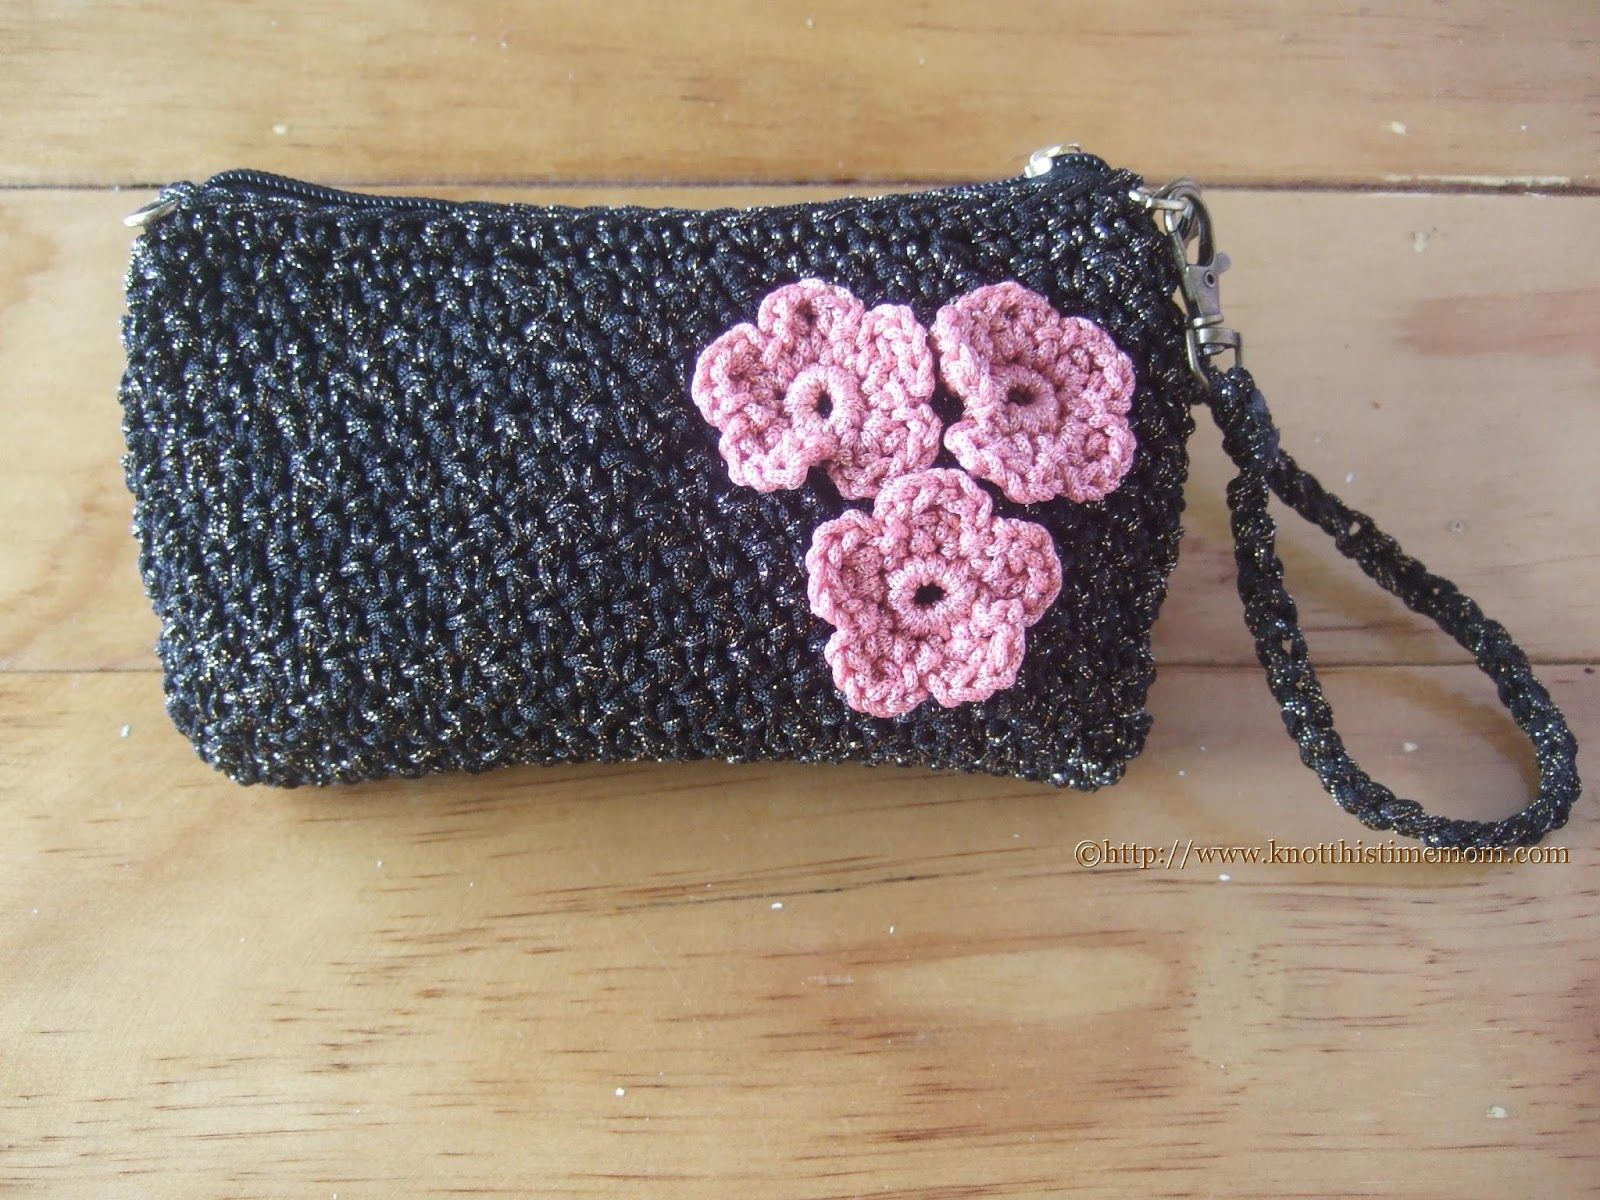 Metallic Evening Purse with Detachable Strap Free Pattern! Follow me at https://www.facebook.com/knotthistimemom